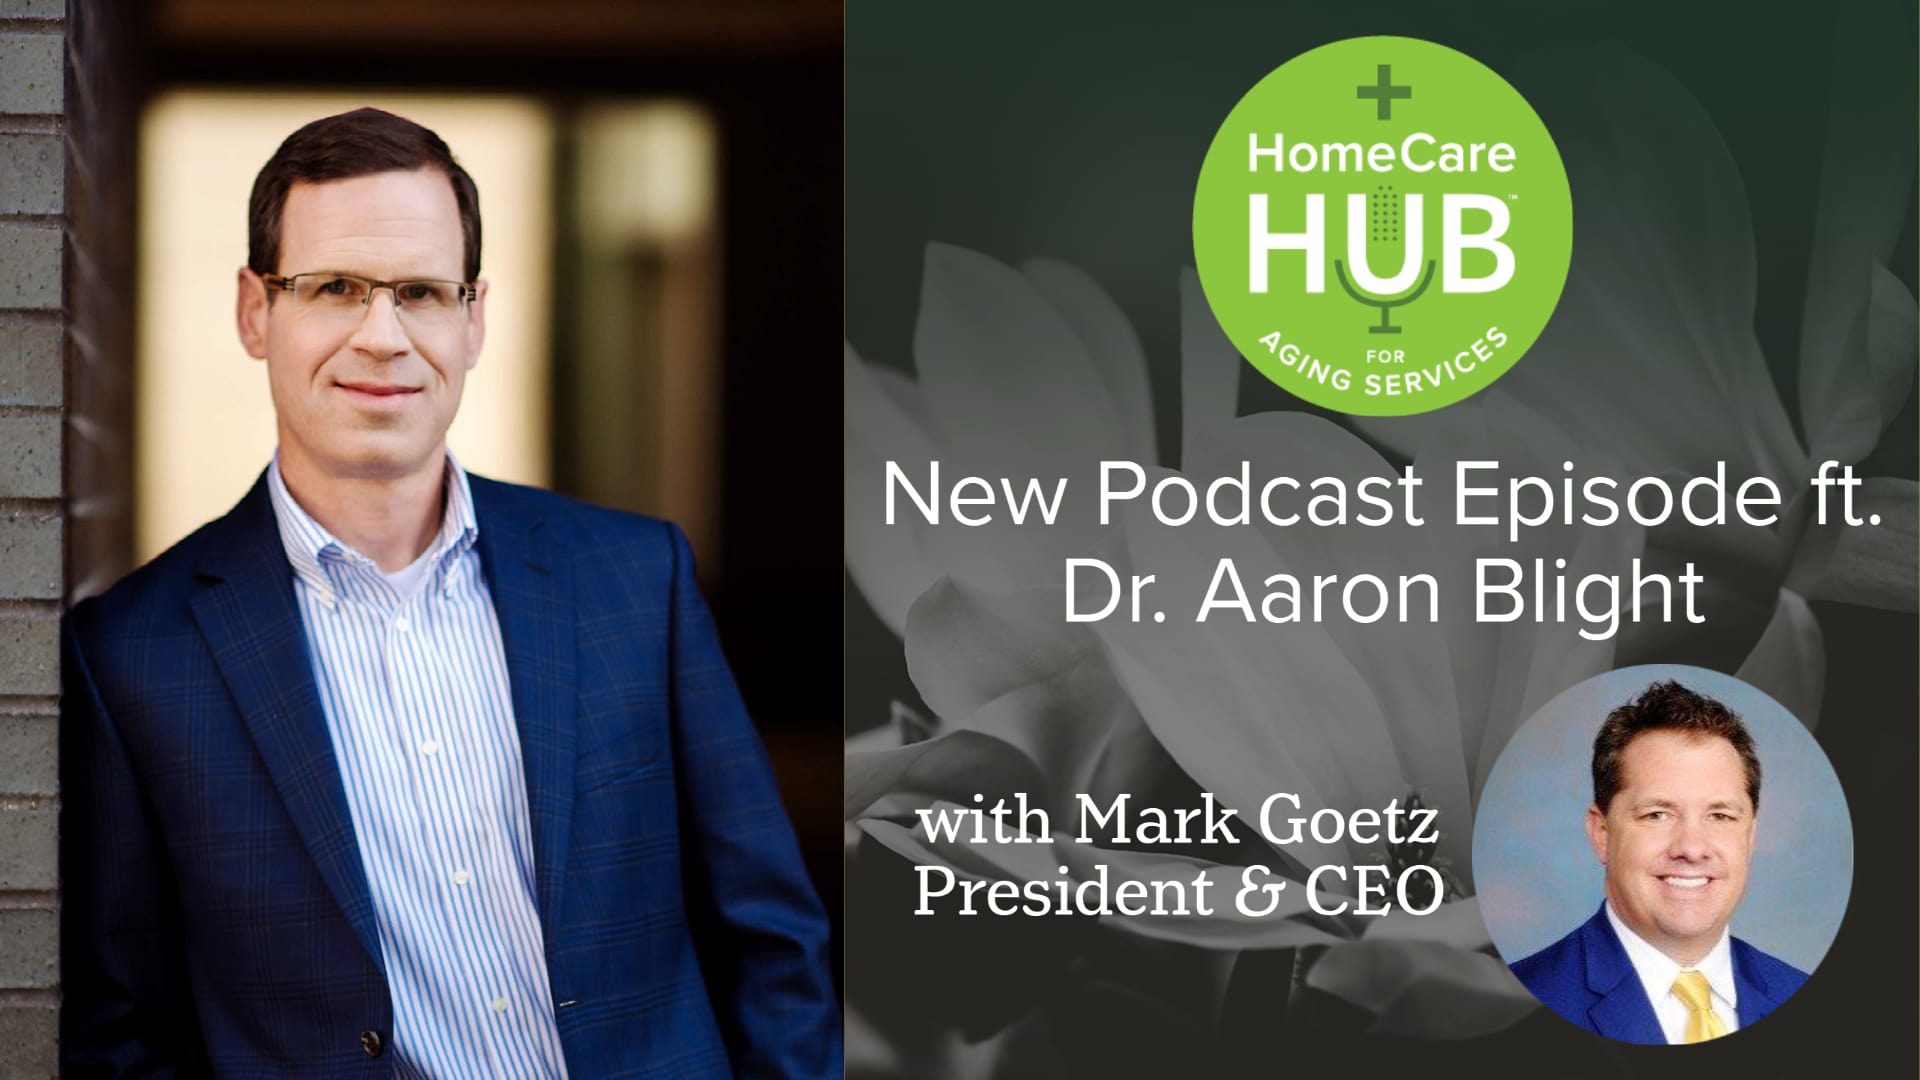 Dr. Aaron Blight podcast episode